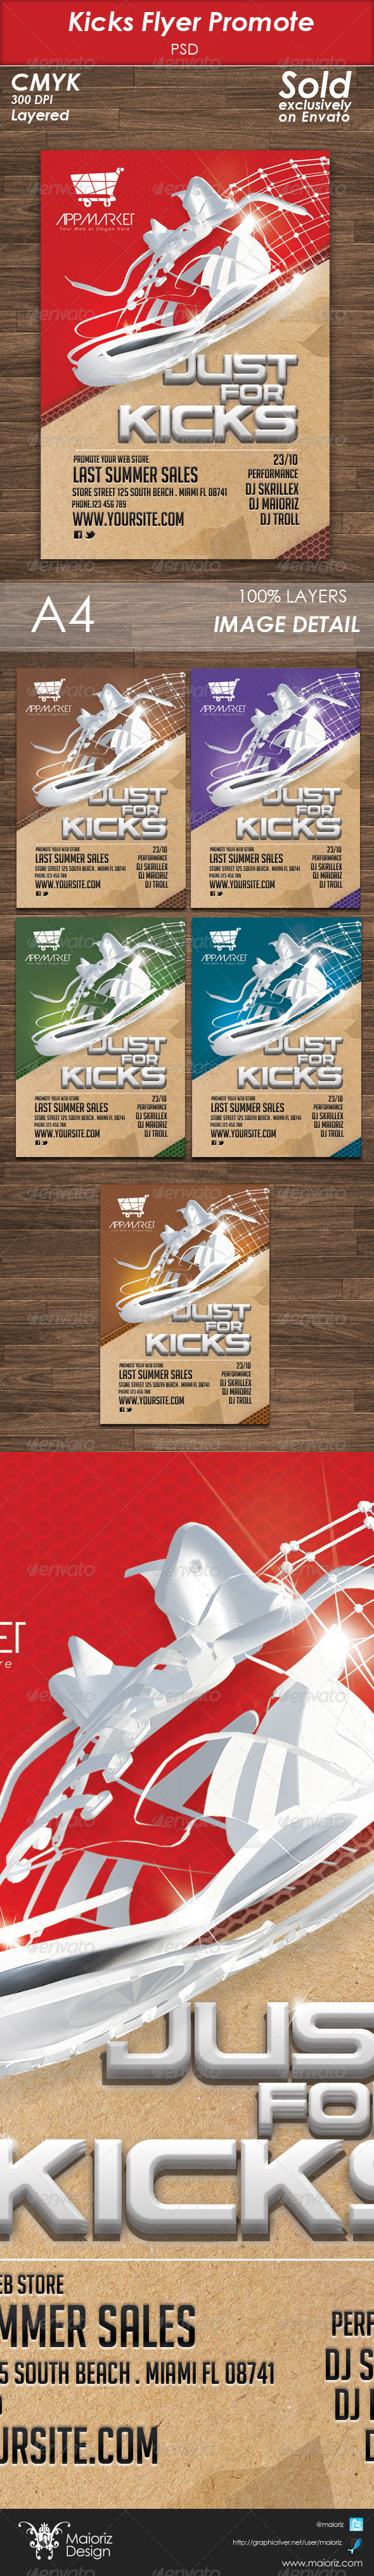 Kicks Flyer Template - Print Templates